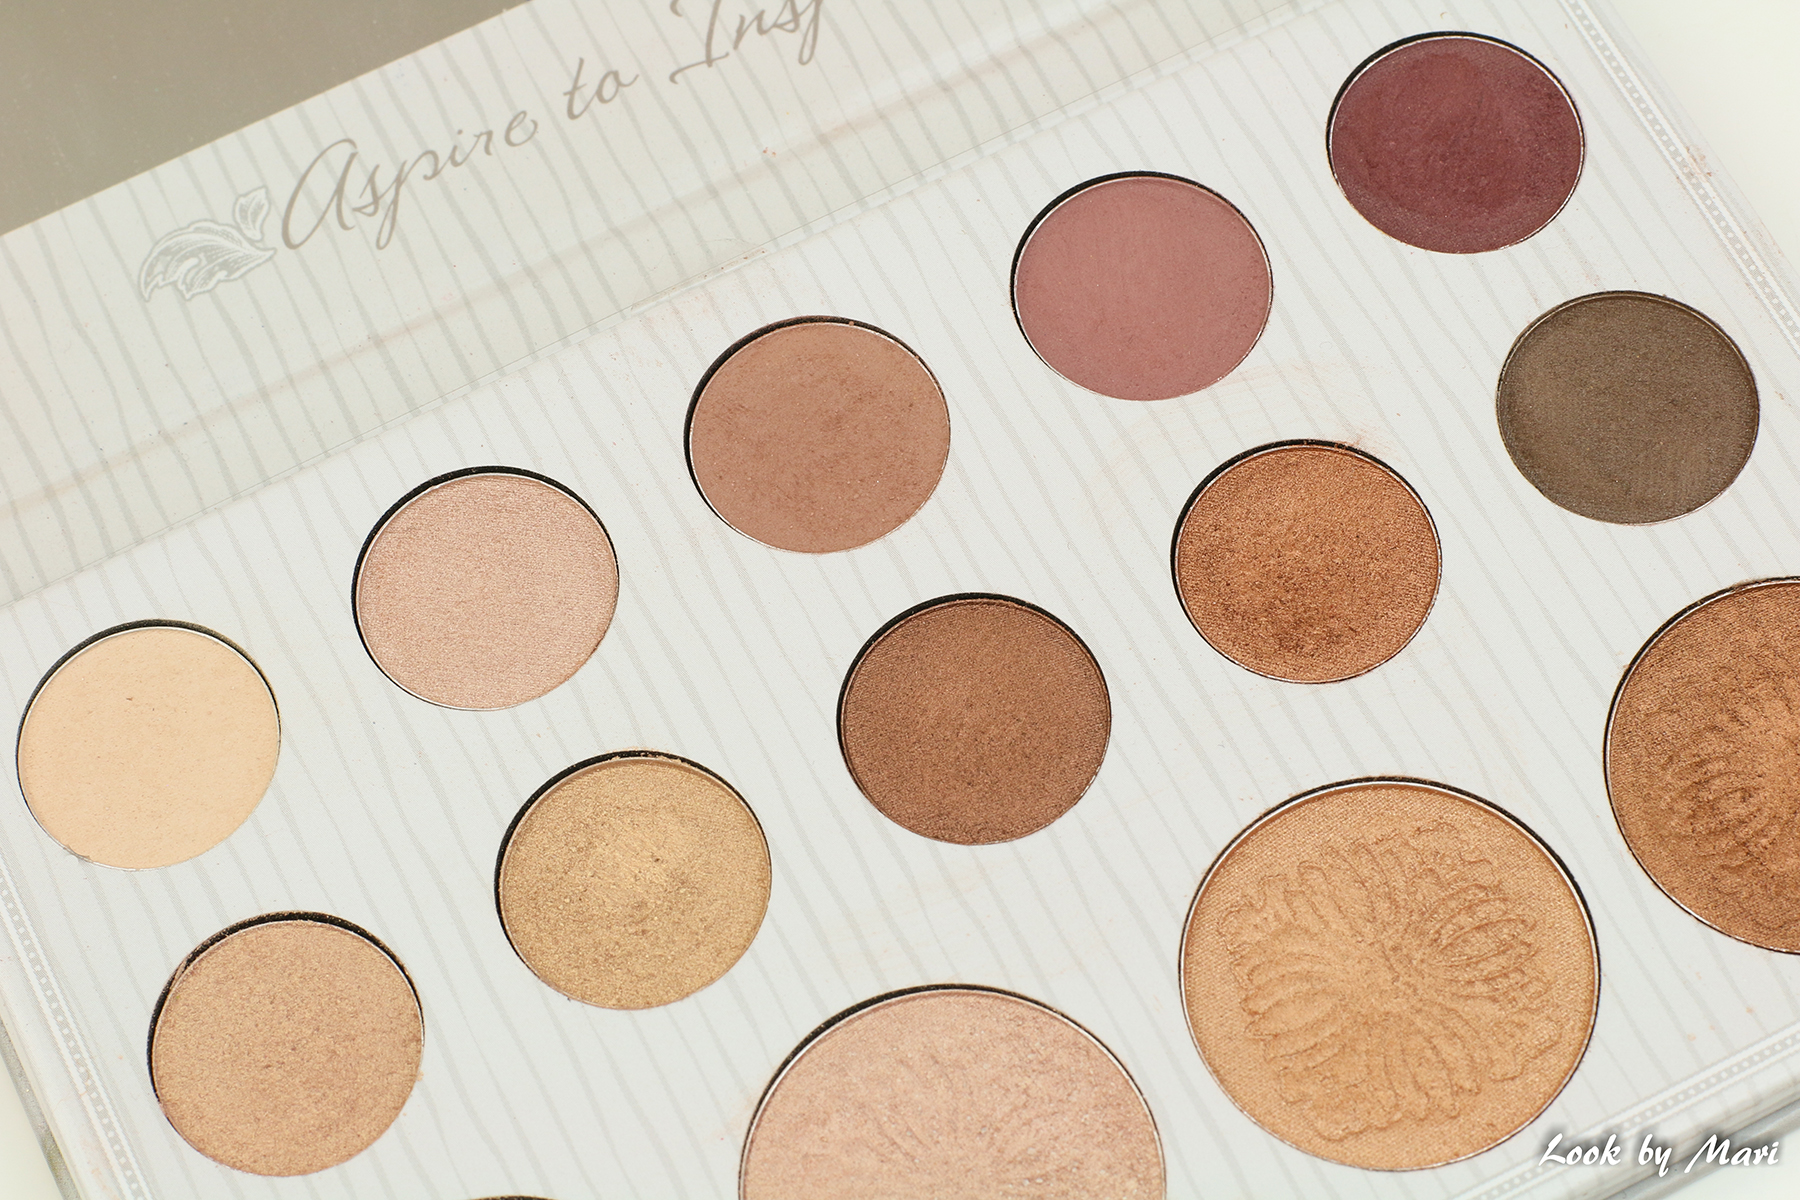 10 bhcosmetics.com carli bybel palette review swatches blog